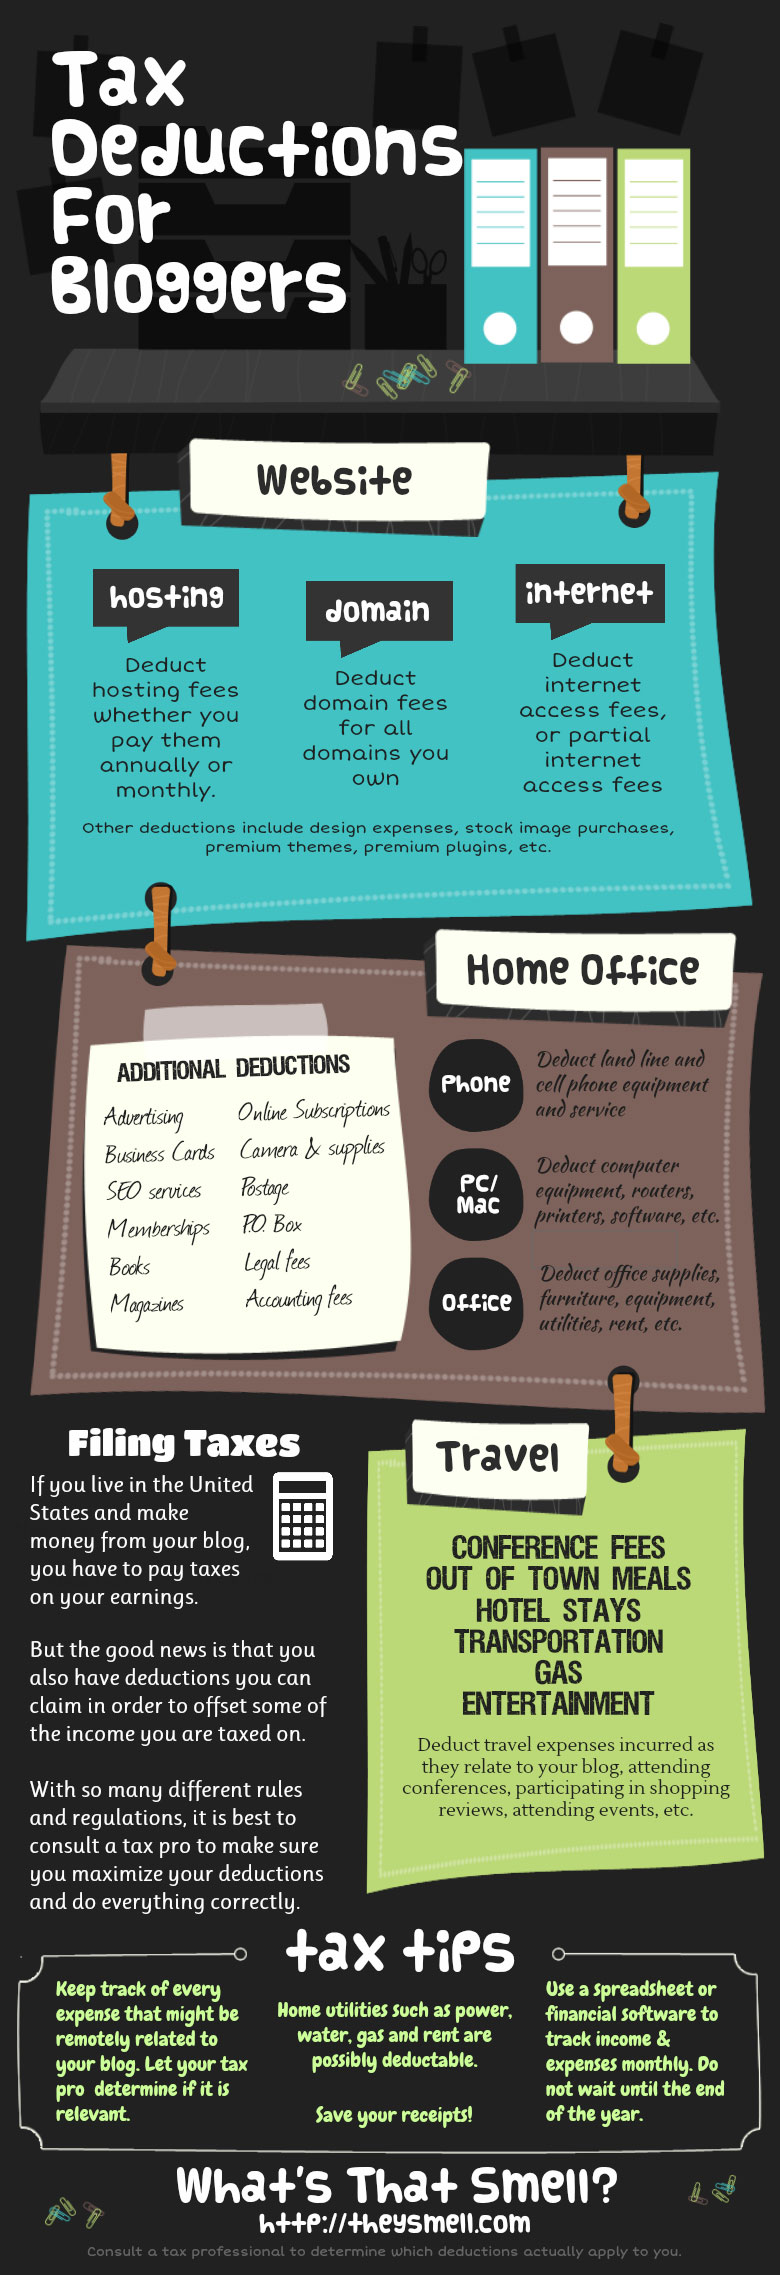 Tax-Deductions-for-Bloggers